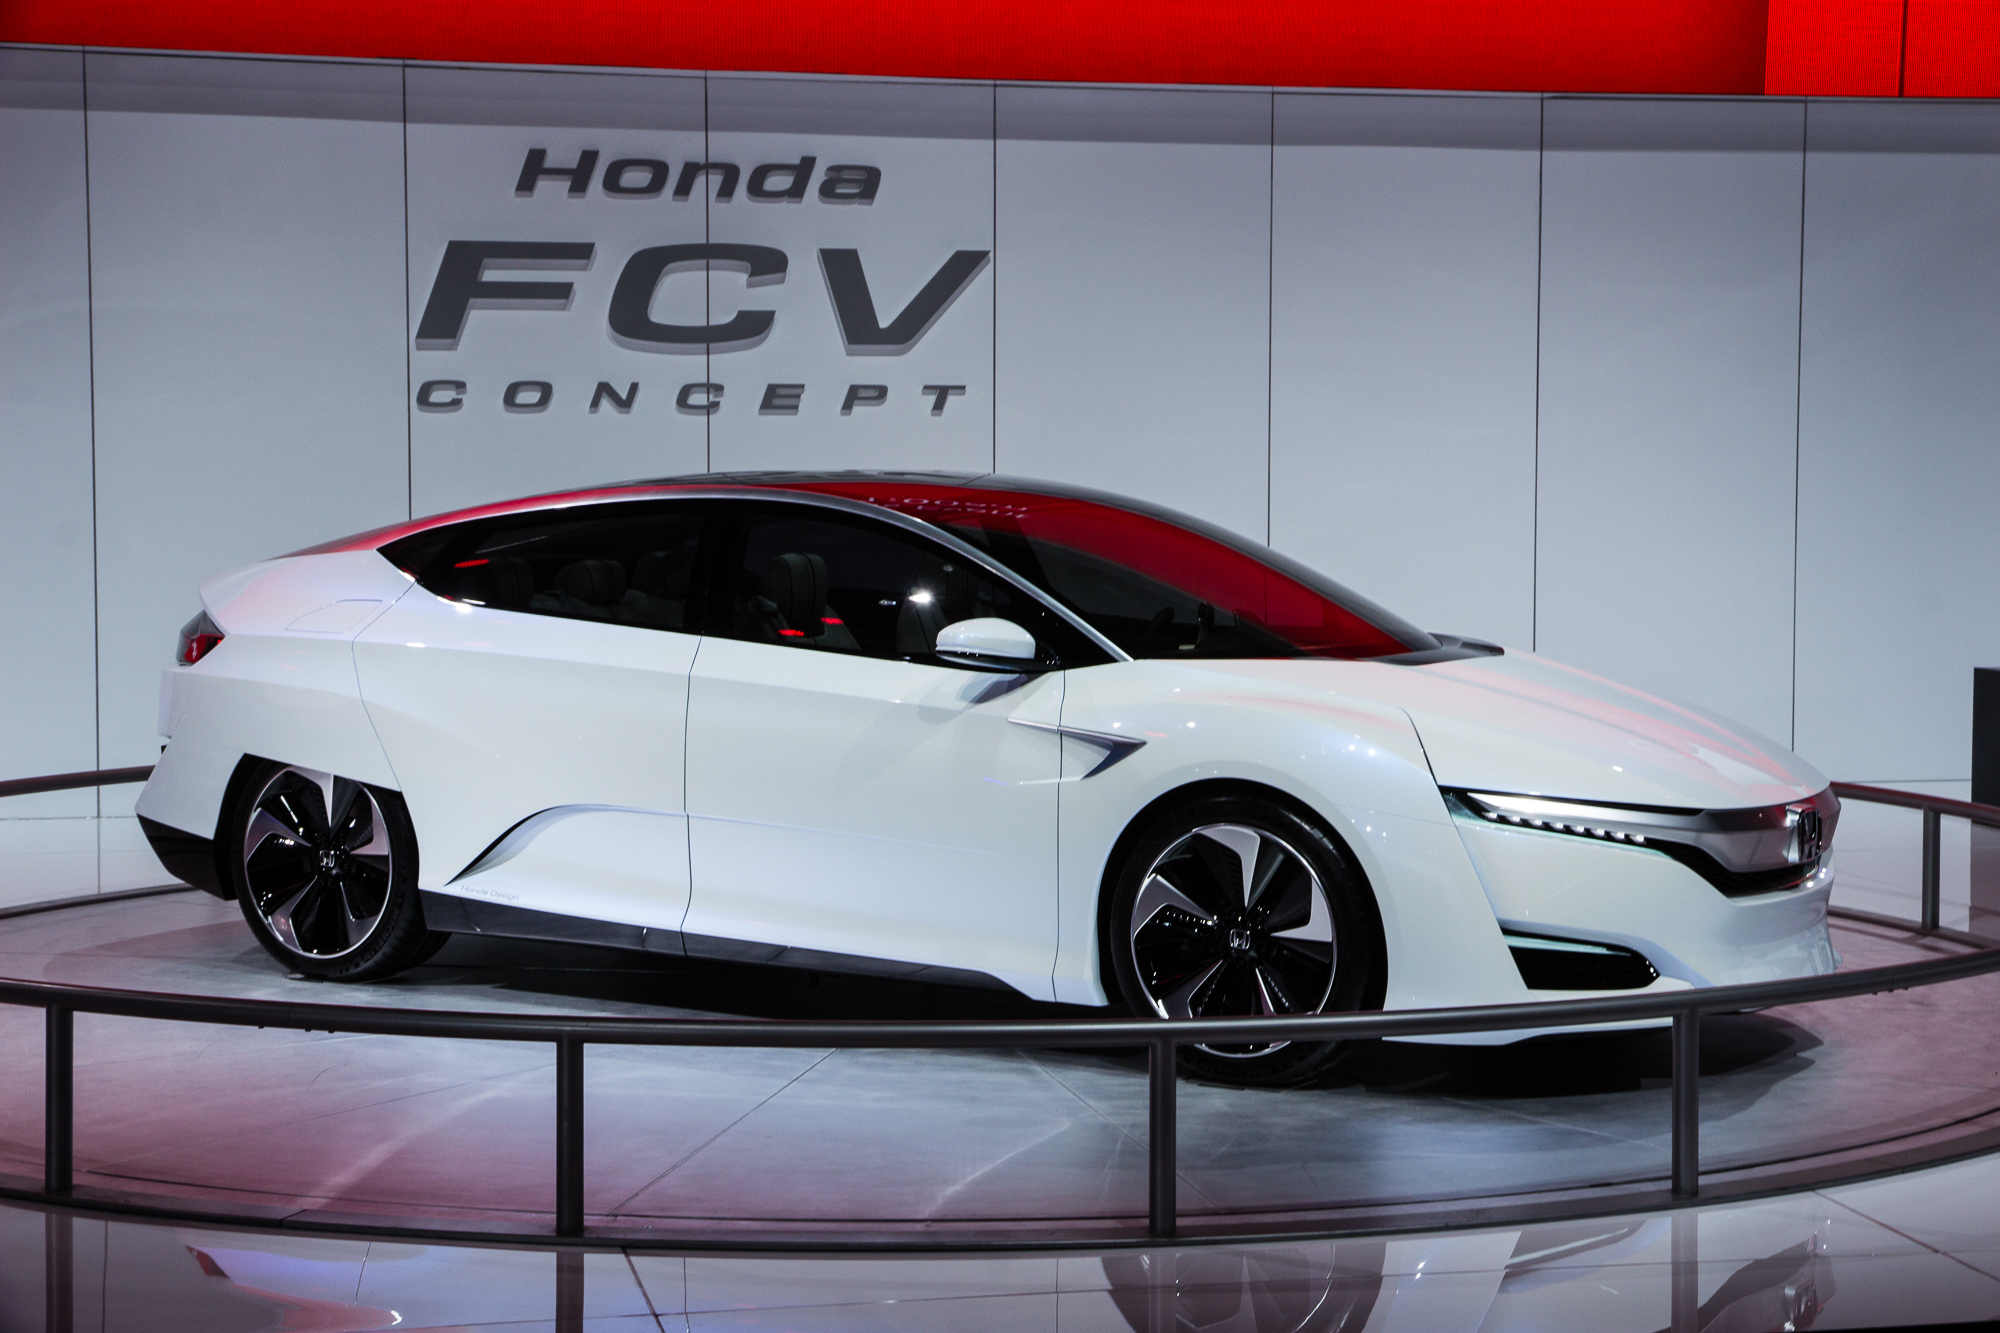 Honda FCV Concept: Hydrogen Fuel-Cell Vehicle Coming In